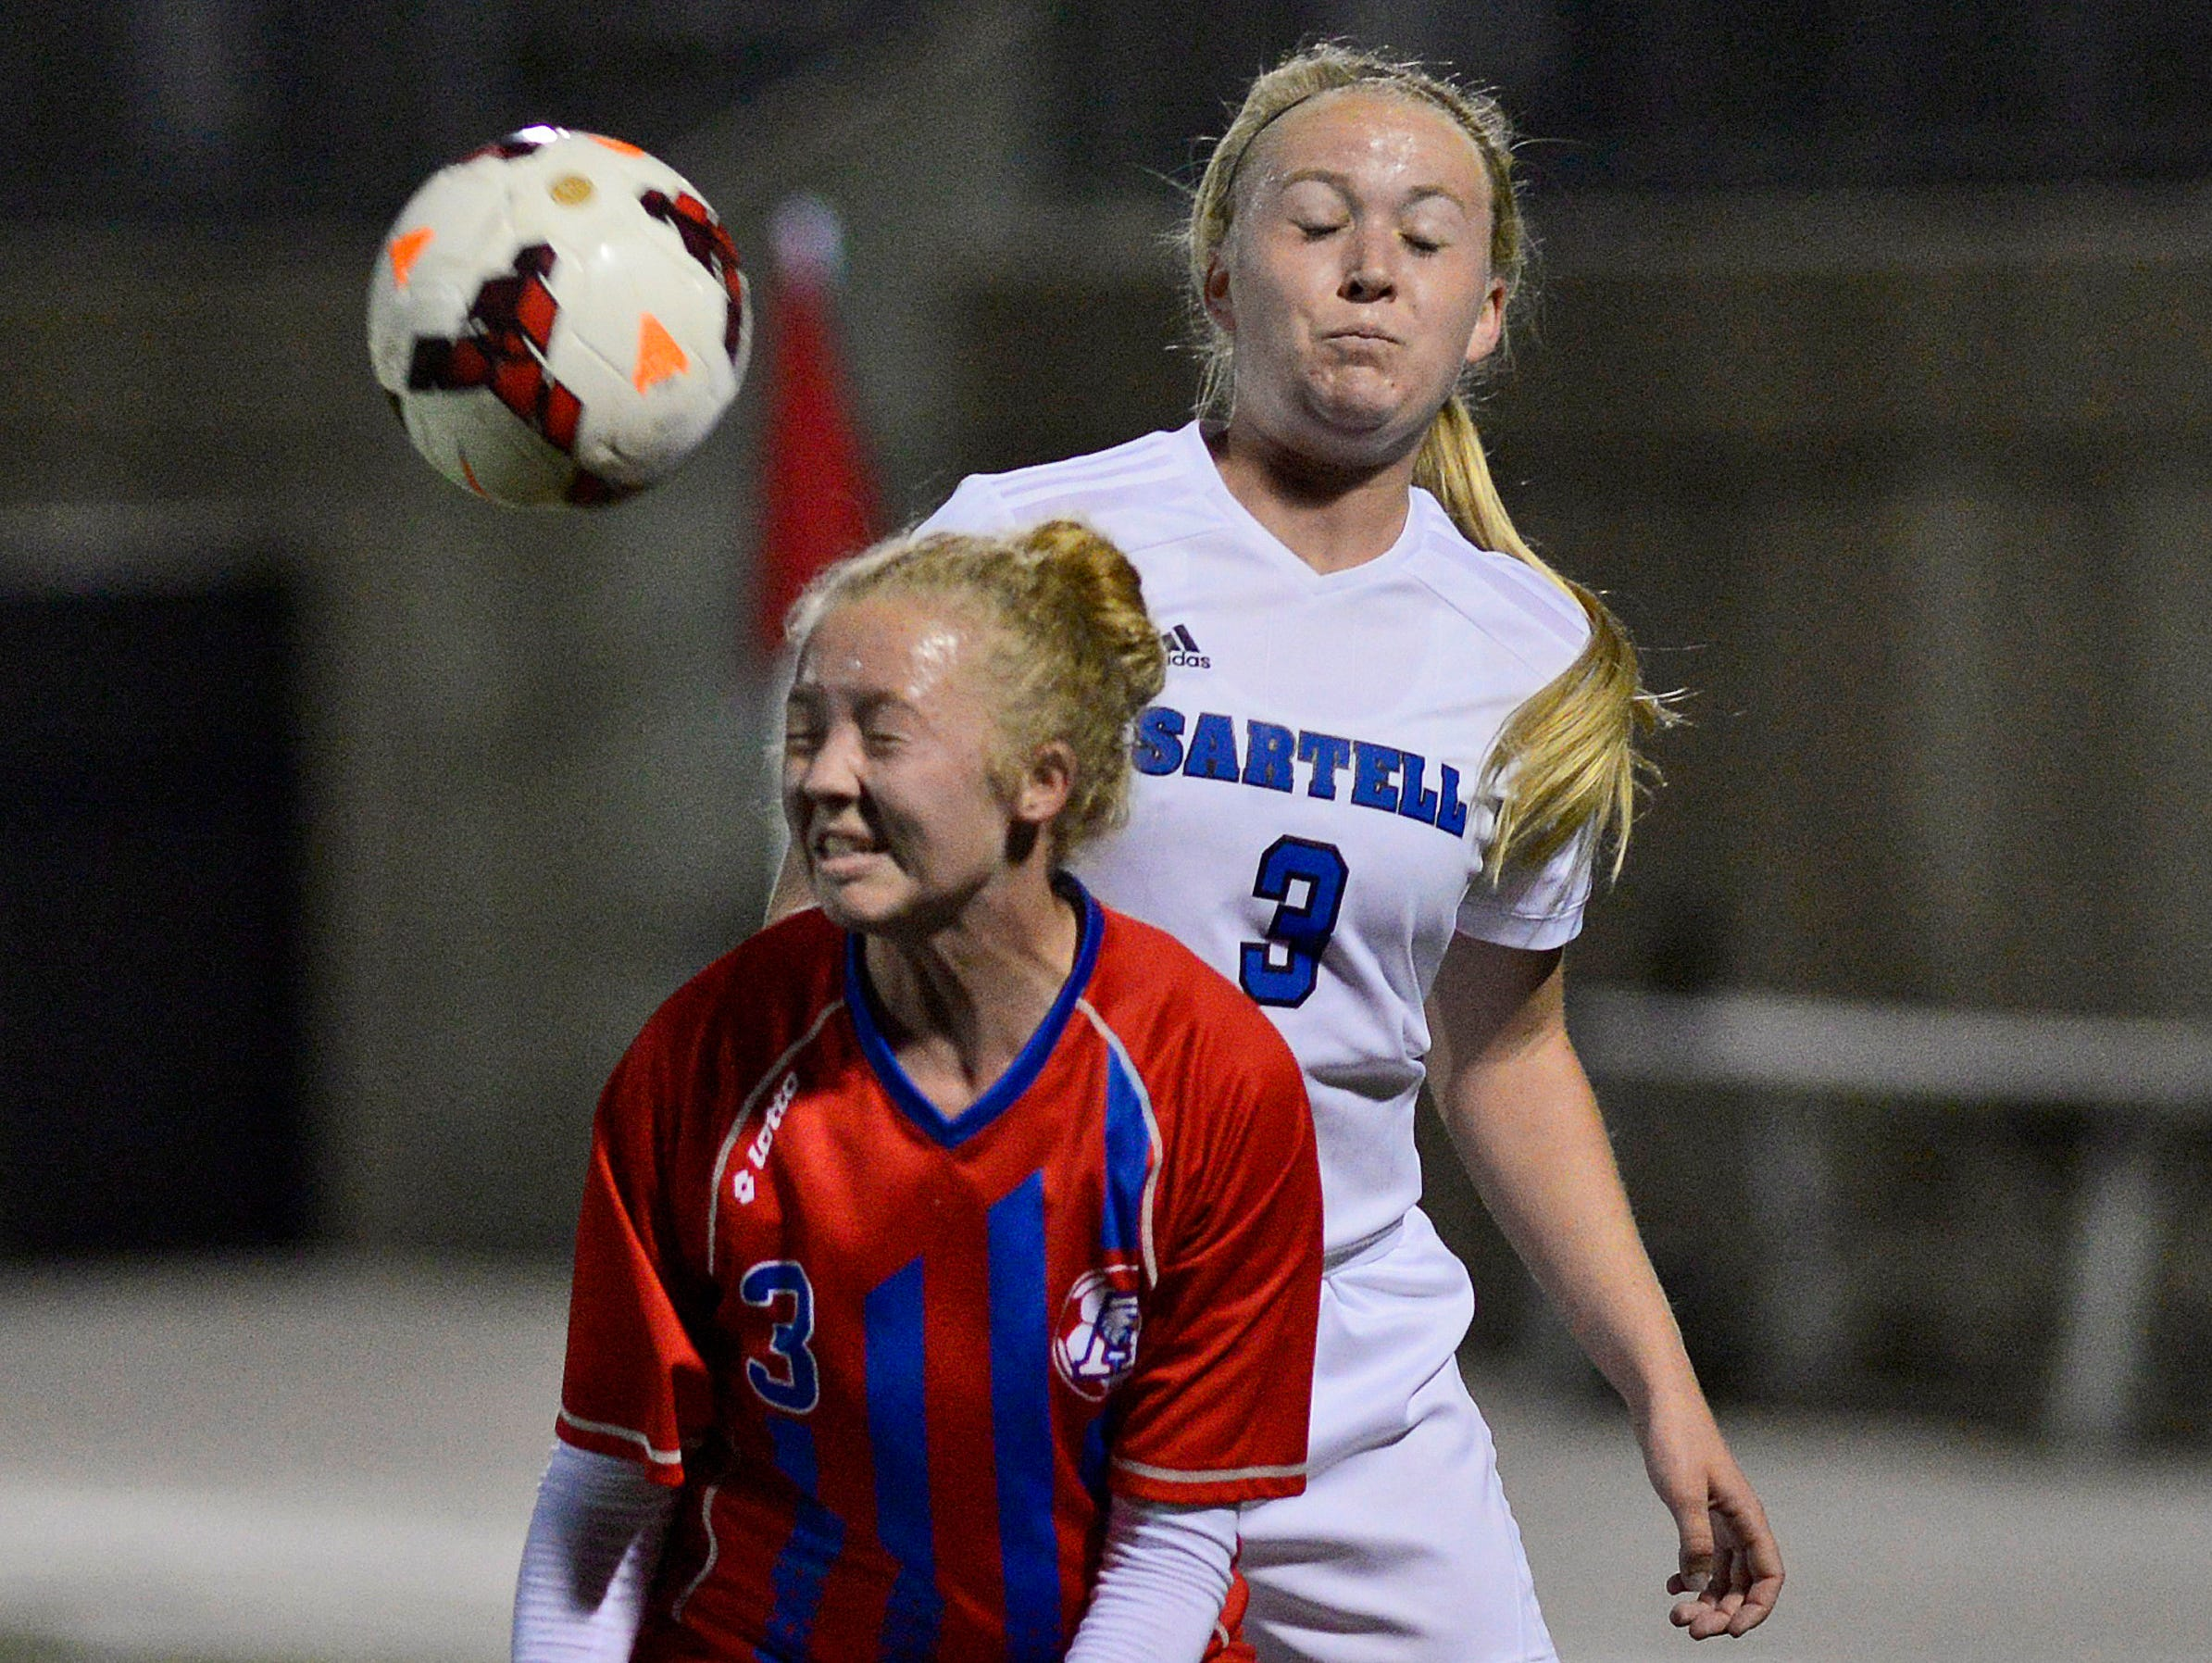 St. Cloud Apollo's Claire Sautner, left, heads the ball away from Sartell's Bria Ferns (3, right) in the first half of their Sect. 8A championship game Thursday, Oct. 22 at Husky Stadium.